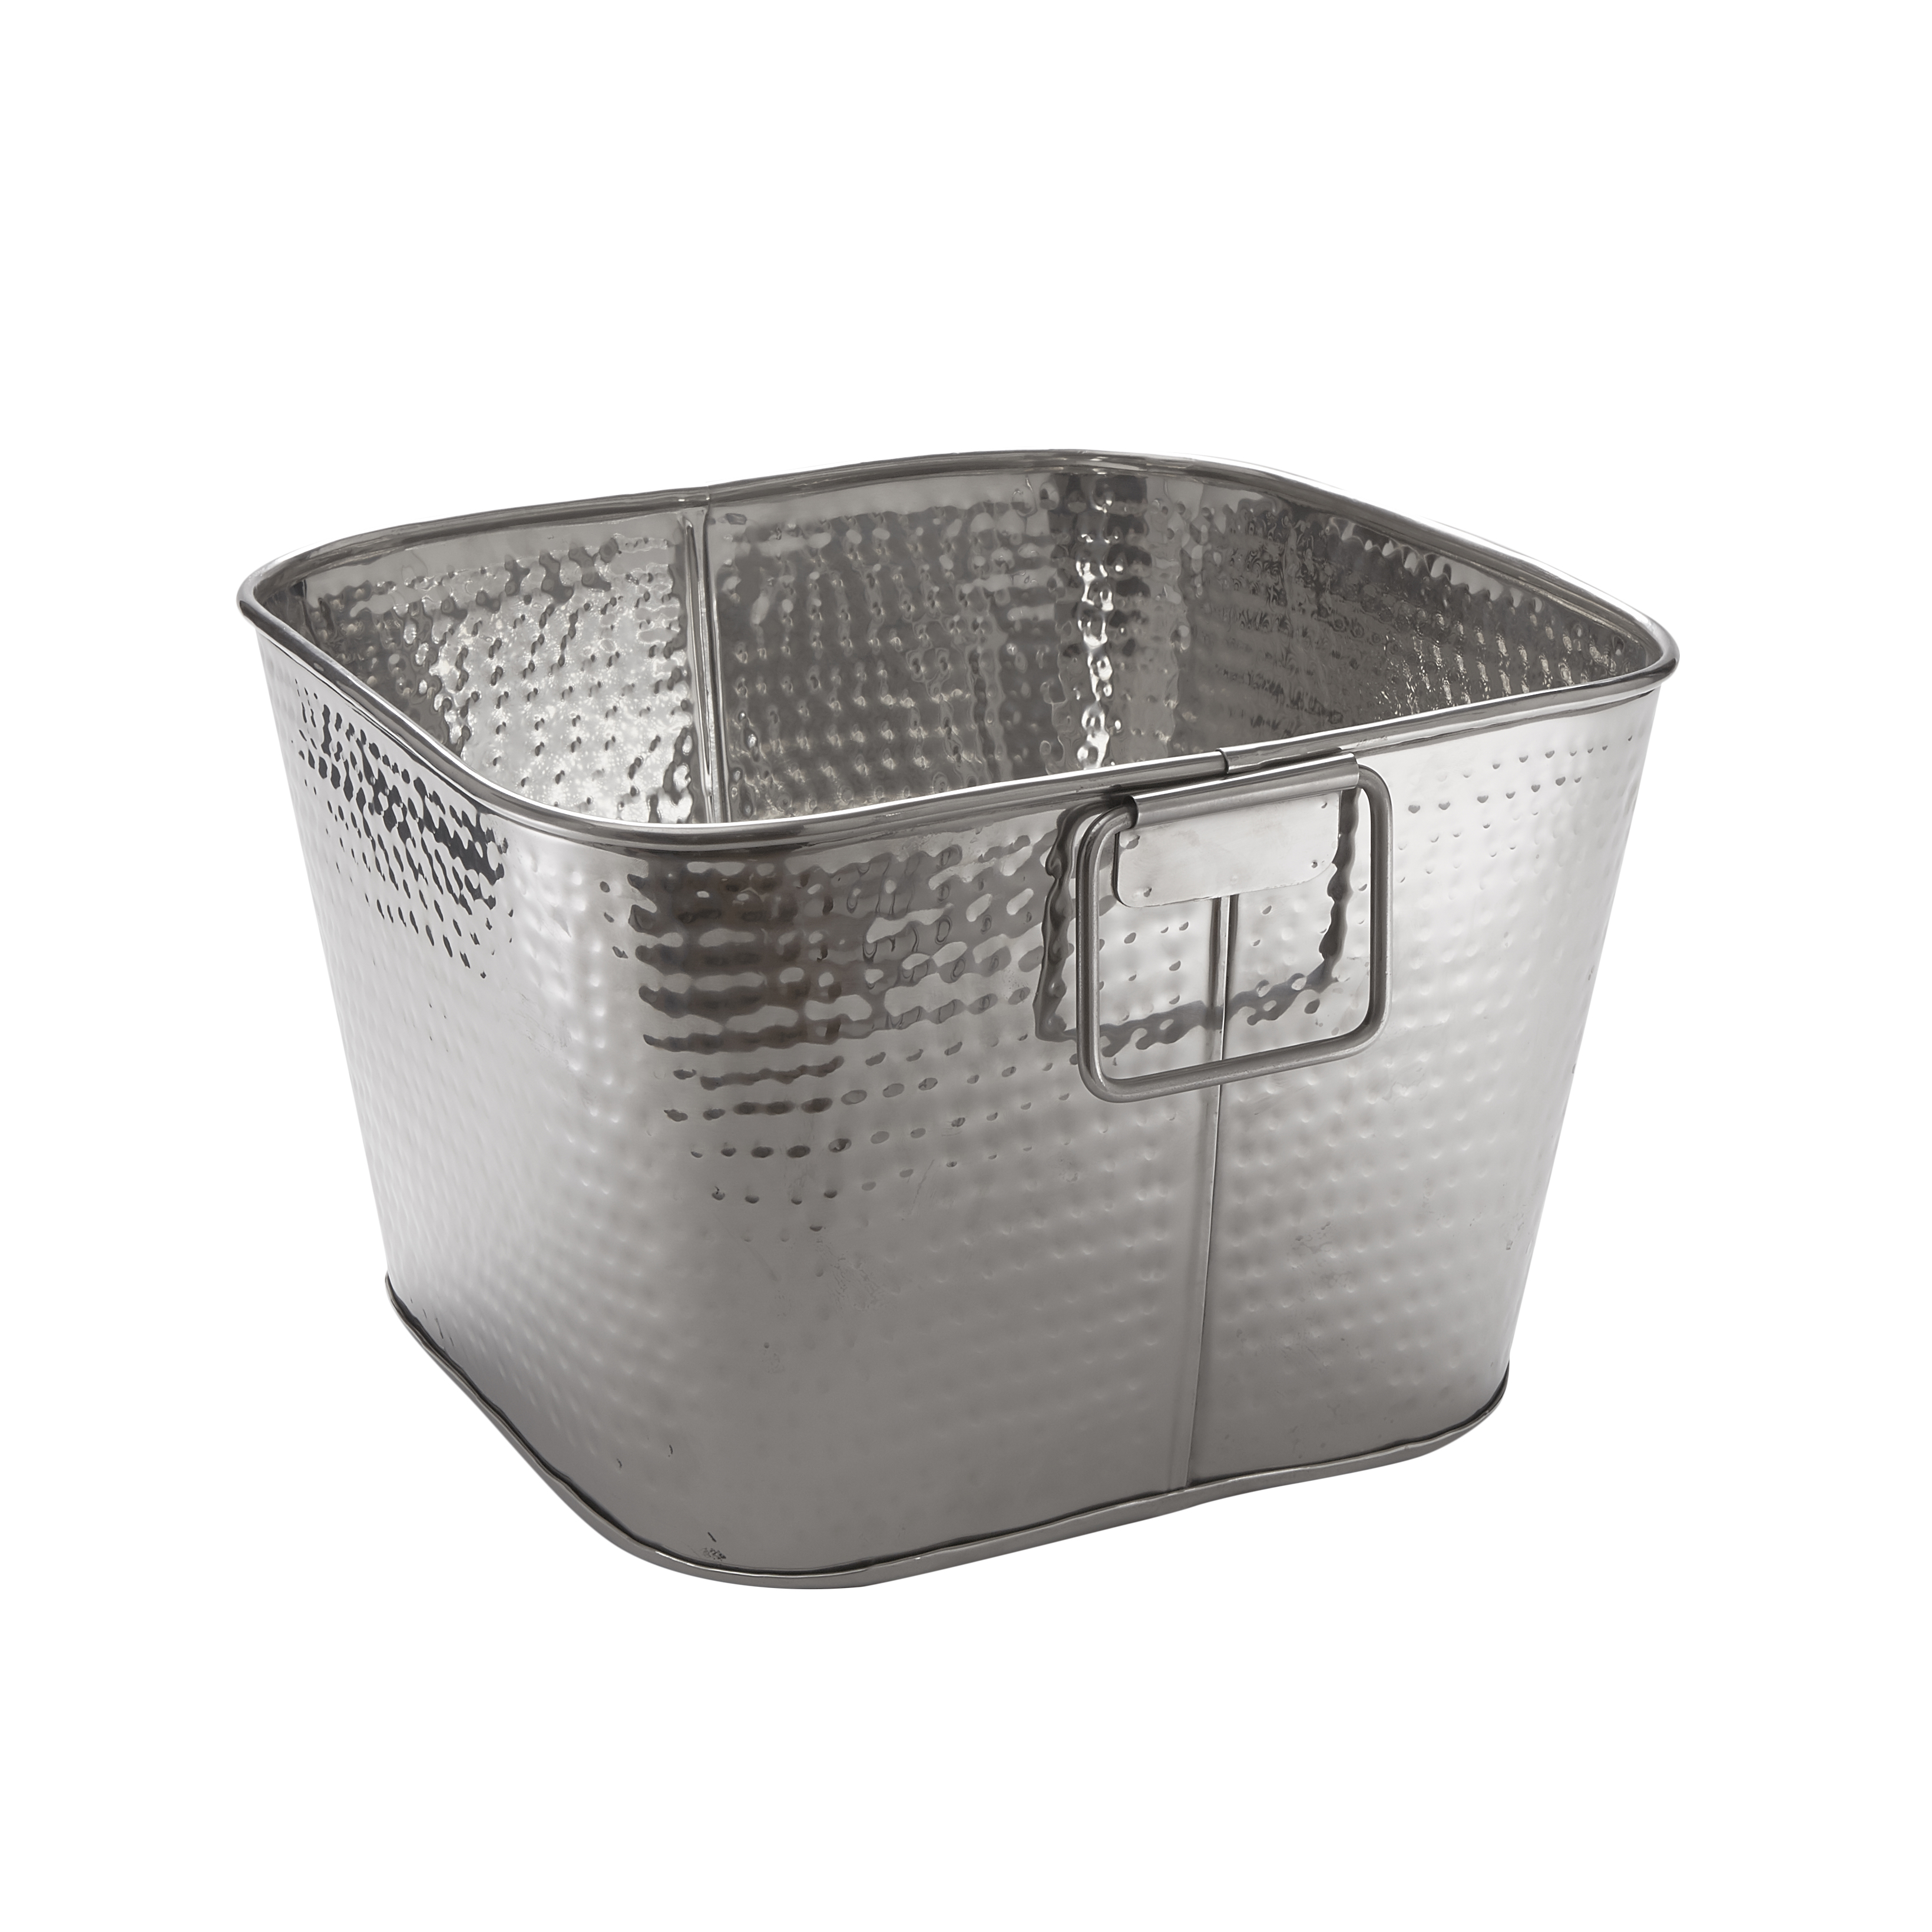 American Metalcraft STH14 beverage / ice tub